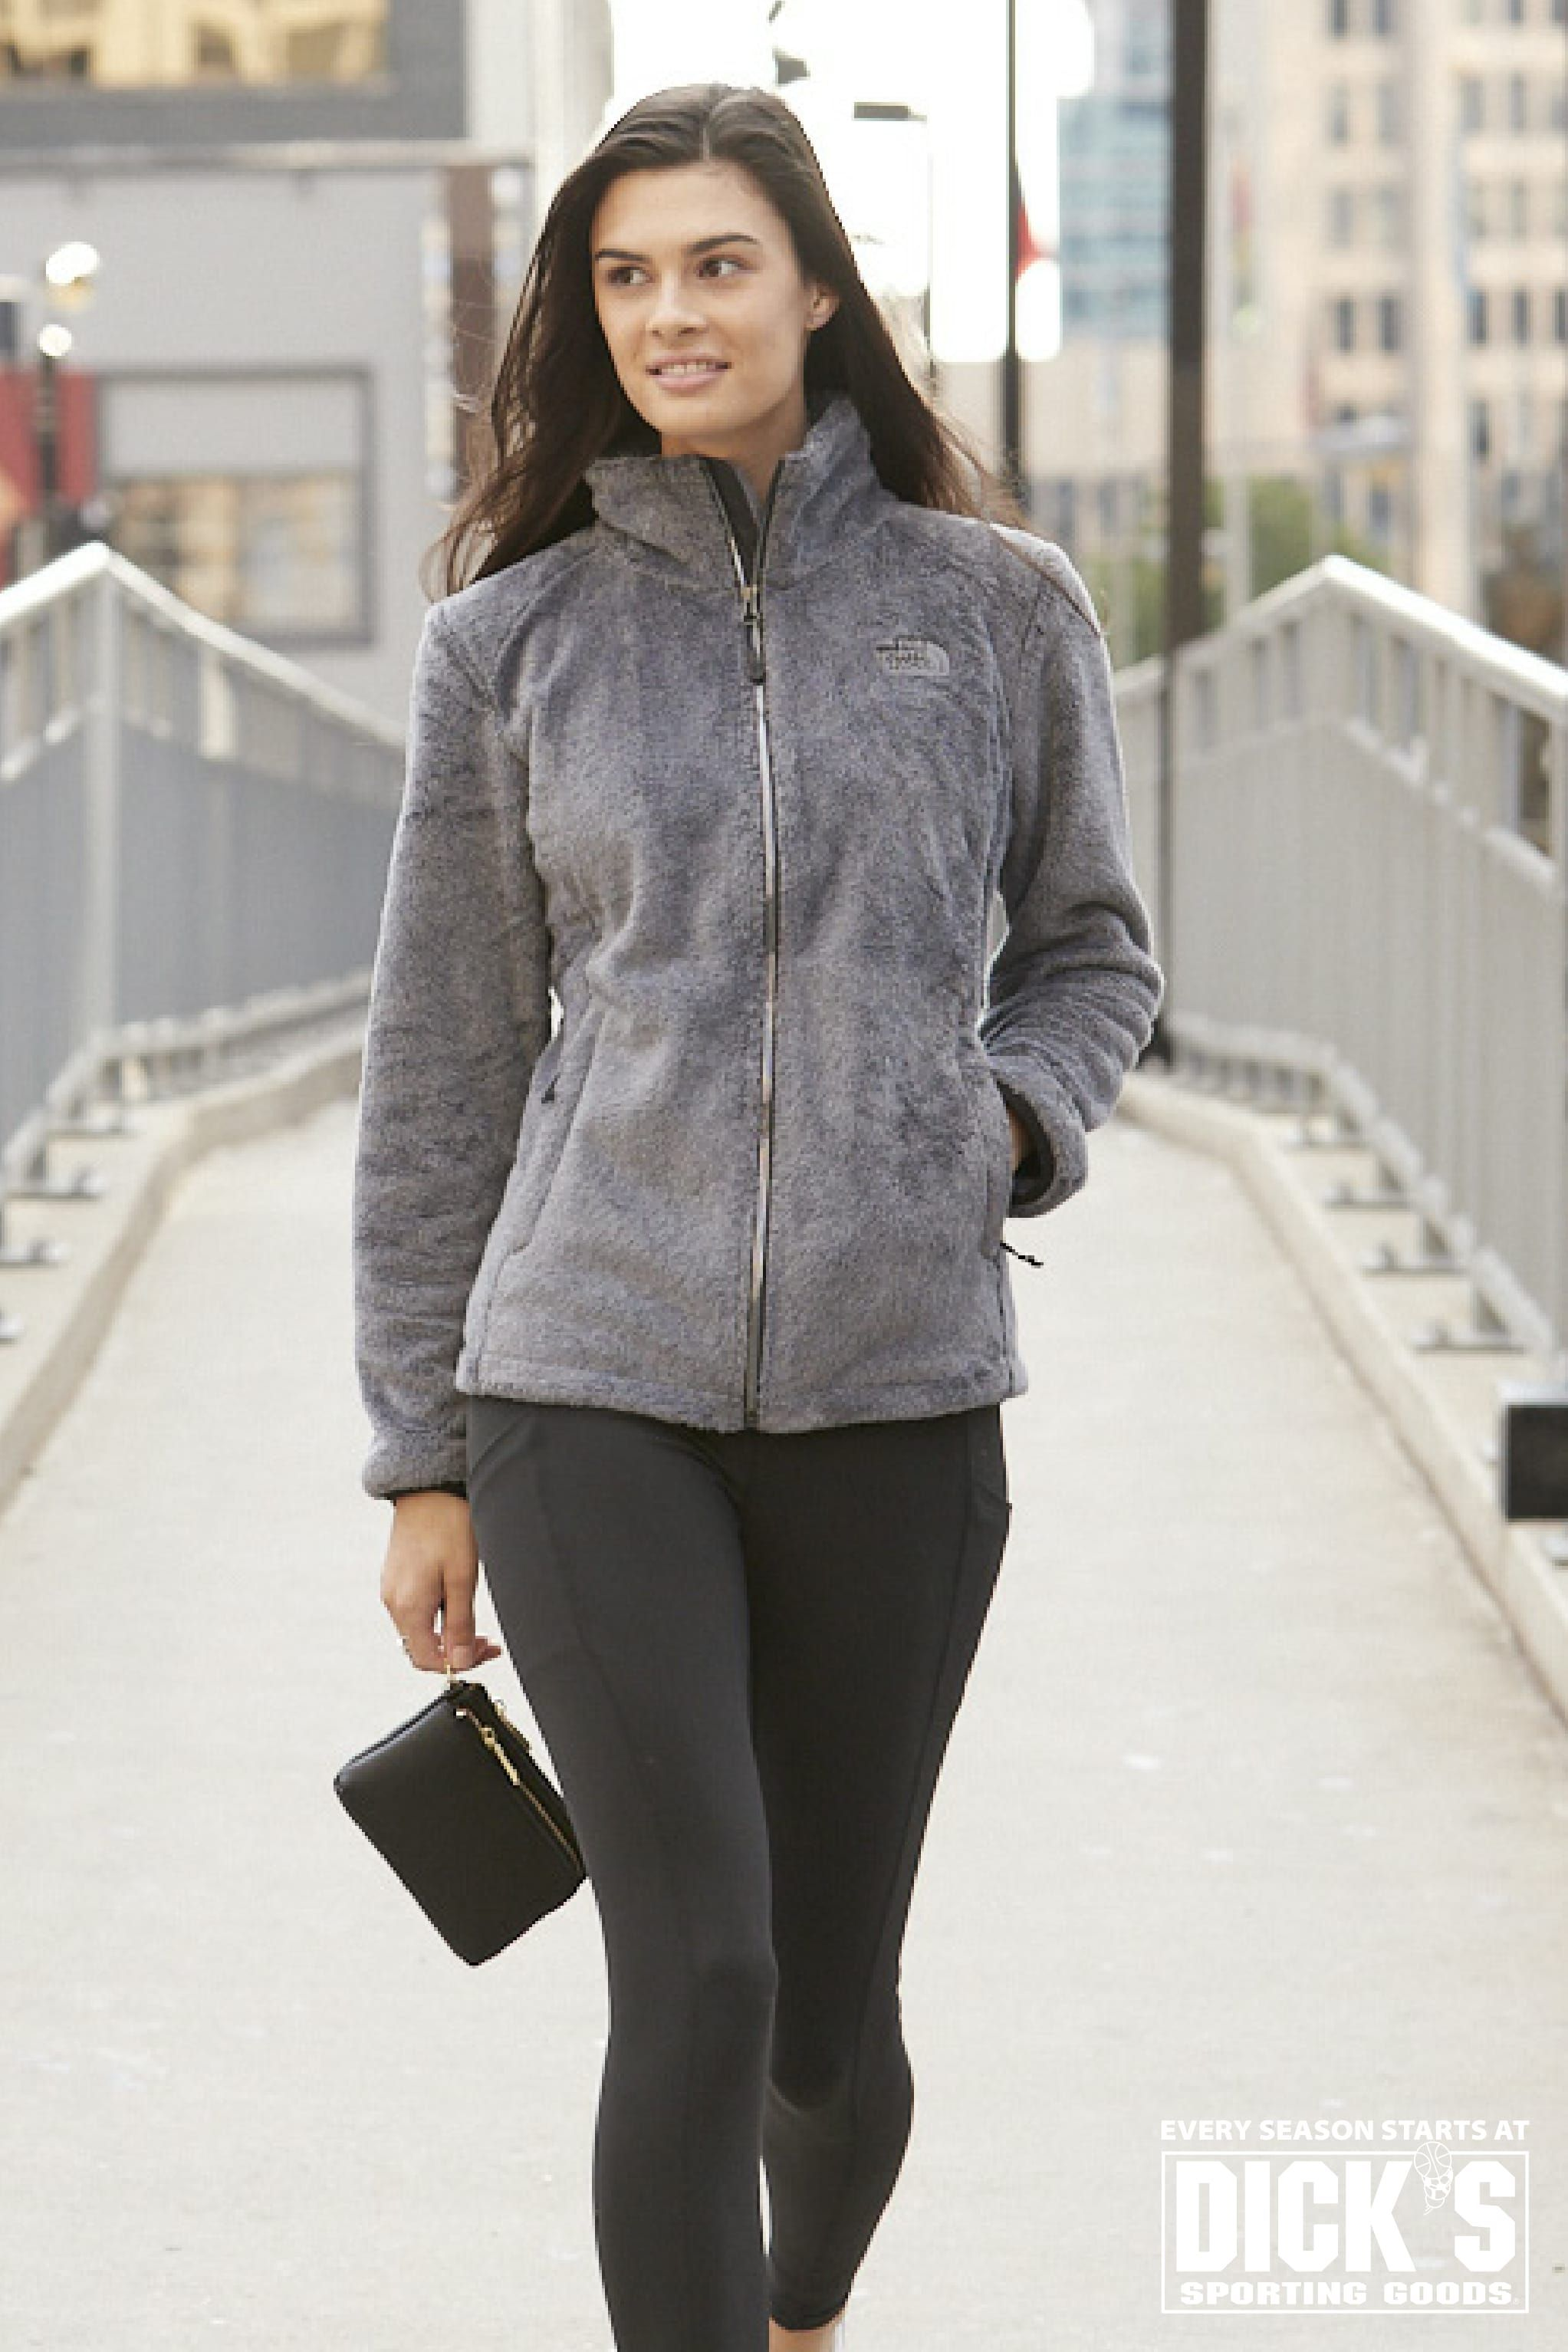 1c8095a2e009 Gifts for her including The North Face Women s Osito 2 Fleece Jacket at  DICK S Sporting Goods.